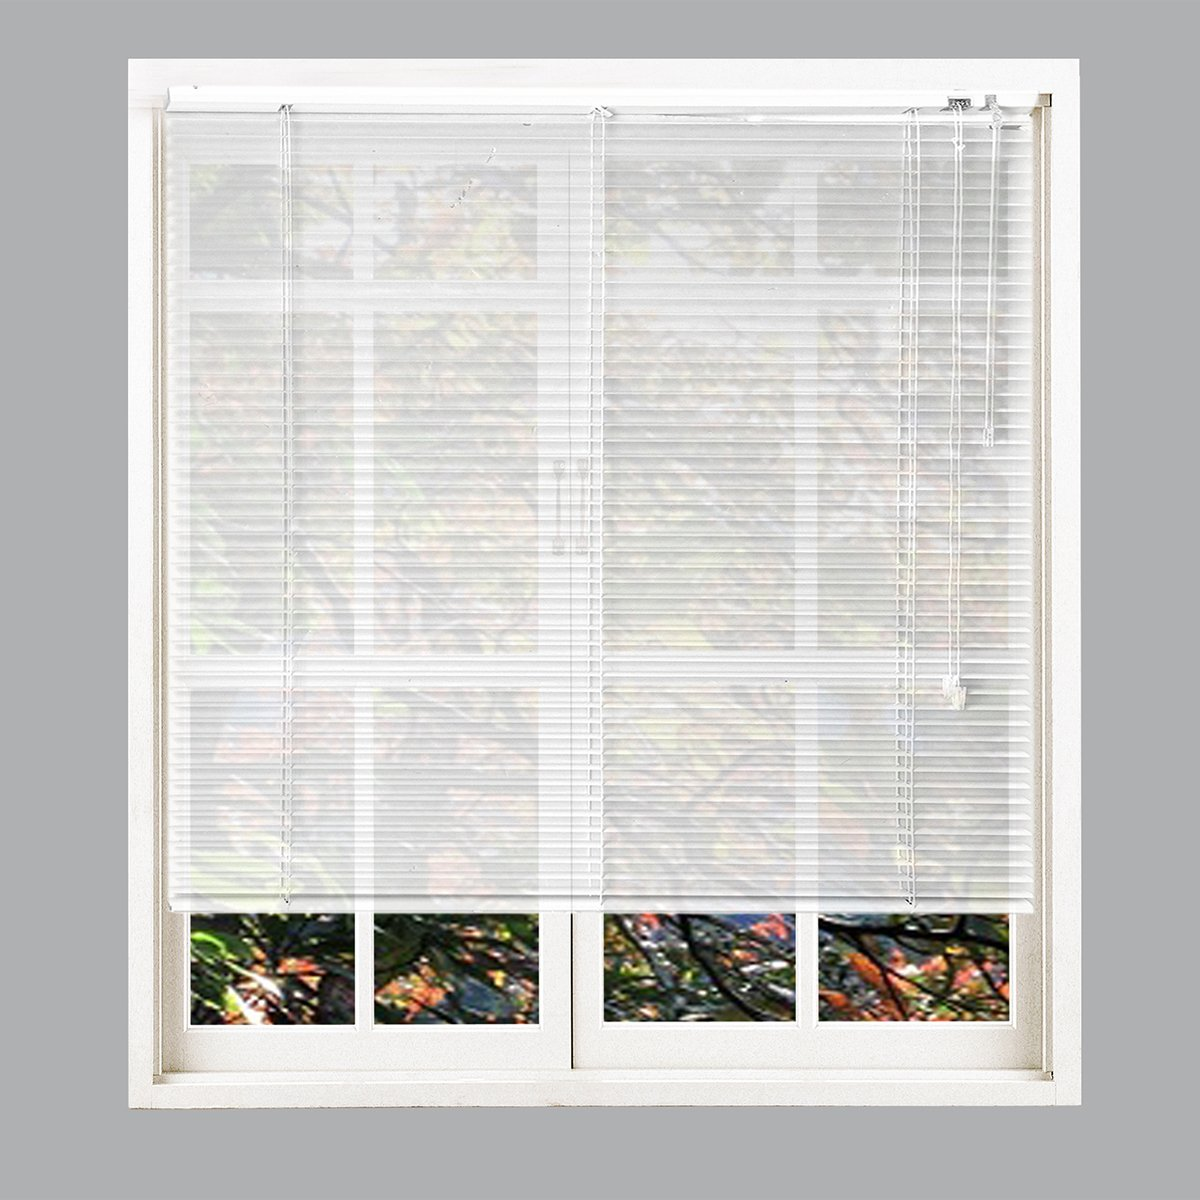 Taiyuhomes Aluminum Horizontal Window Mini Blinds Blackout Roll Up Shades 1 Inch Slats with Easy Inside and Outside Mount,31 1/2x48 Inch,White